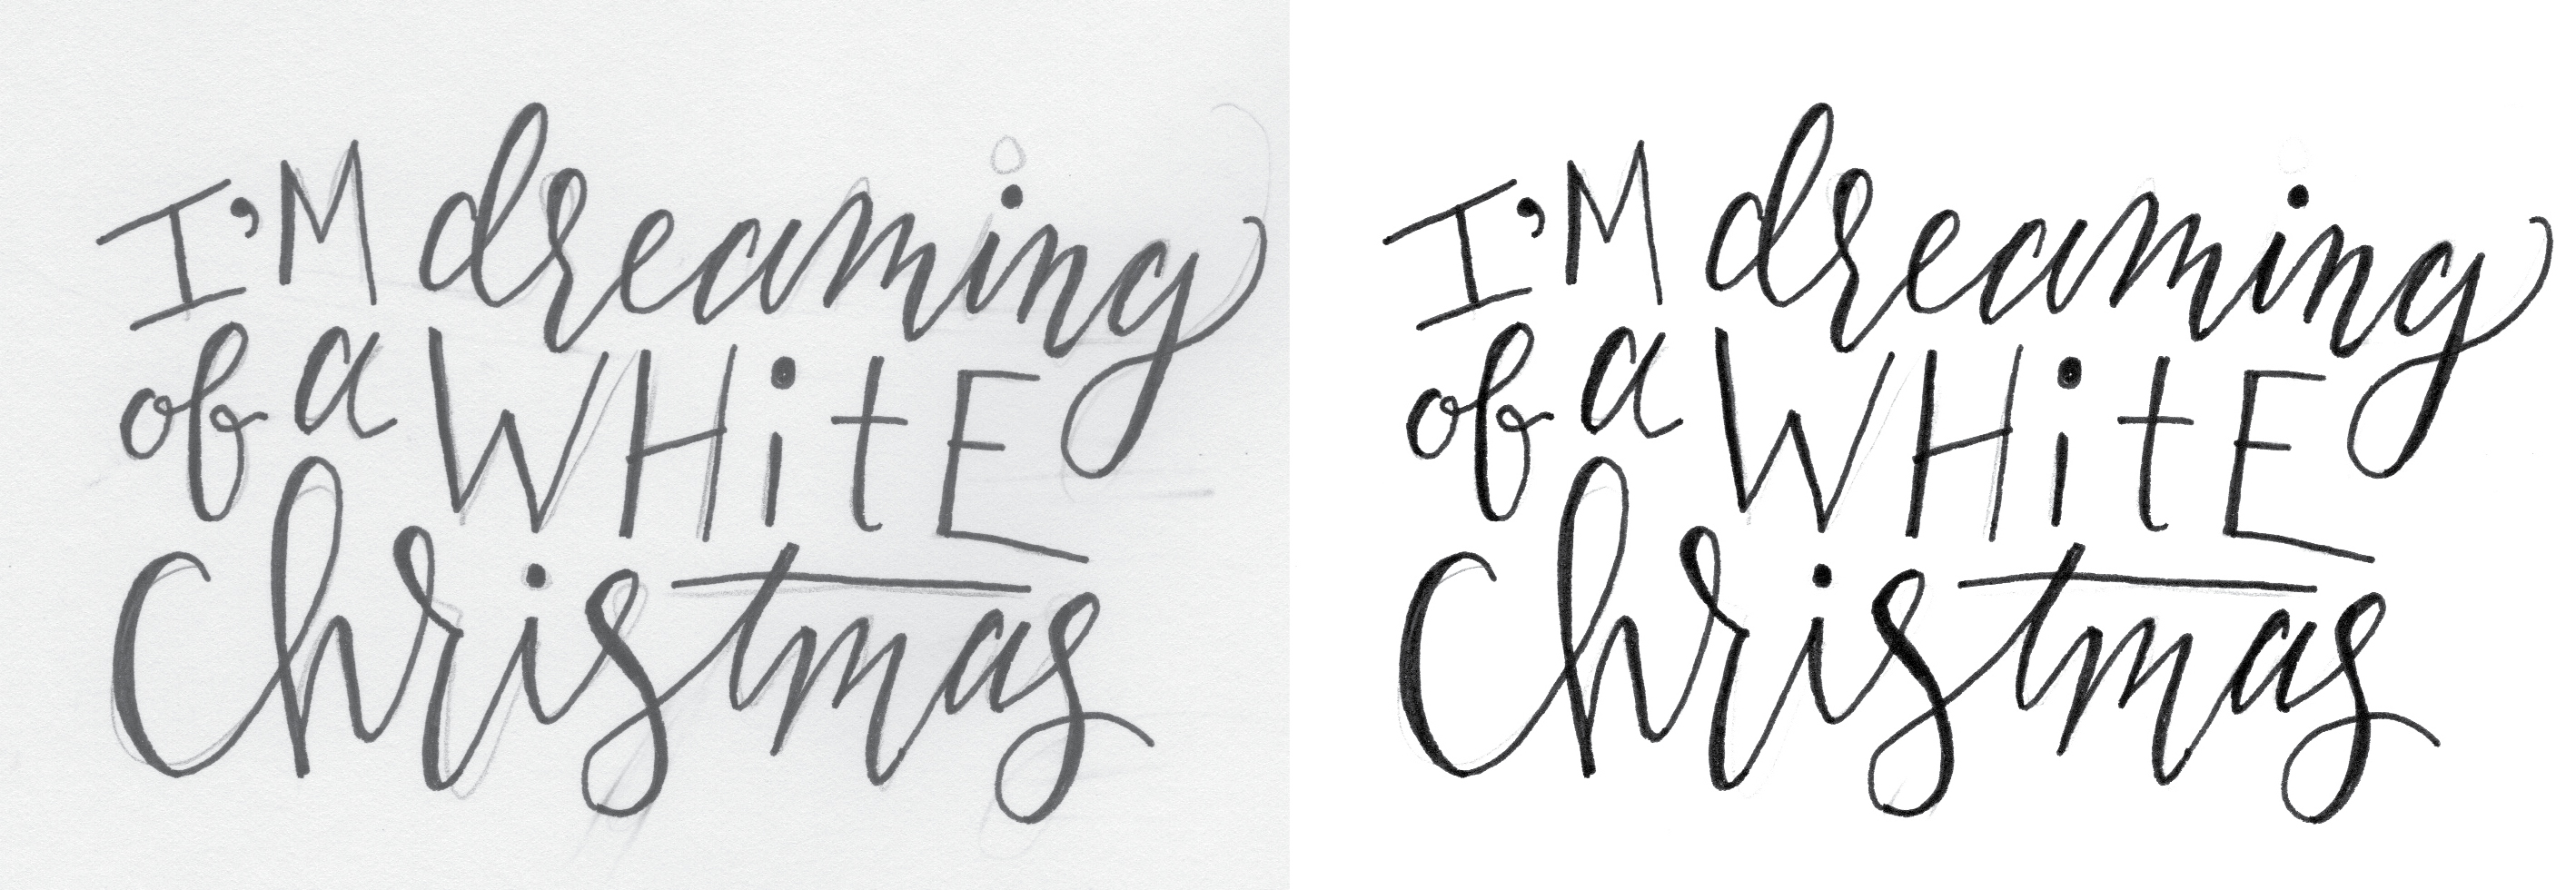 Behind the Designs of Christmas Cards: I'm Dreaming of a White Christmas sketches